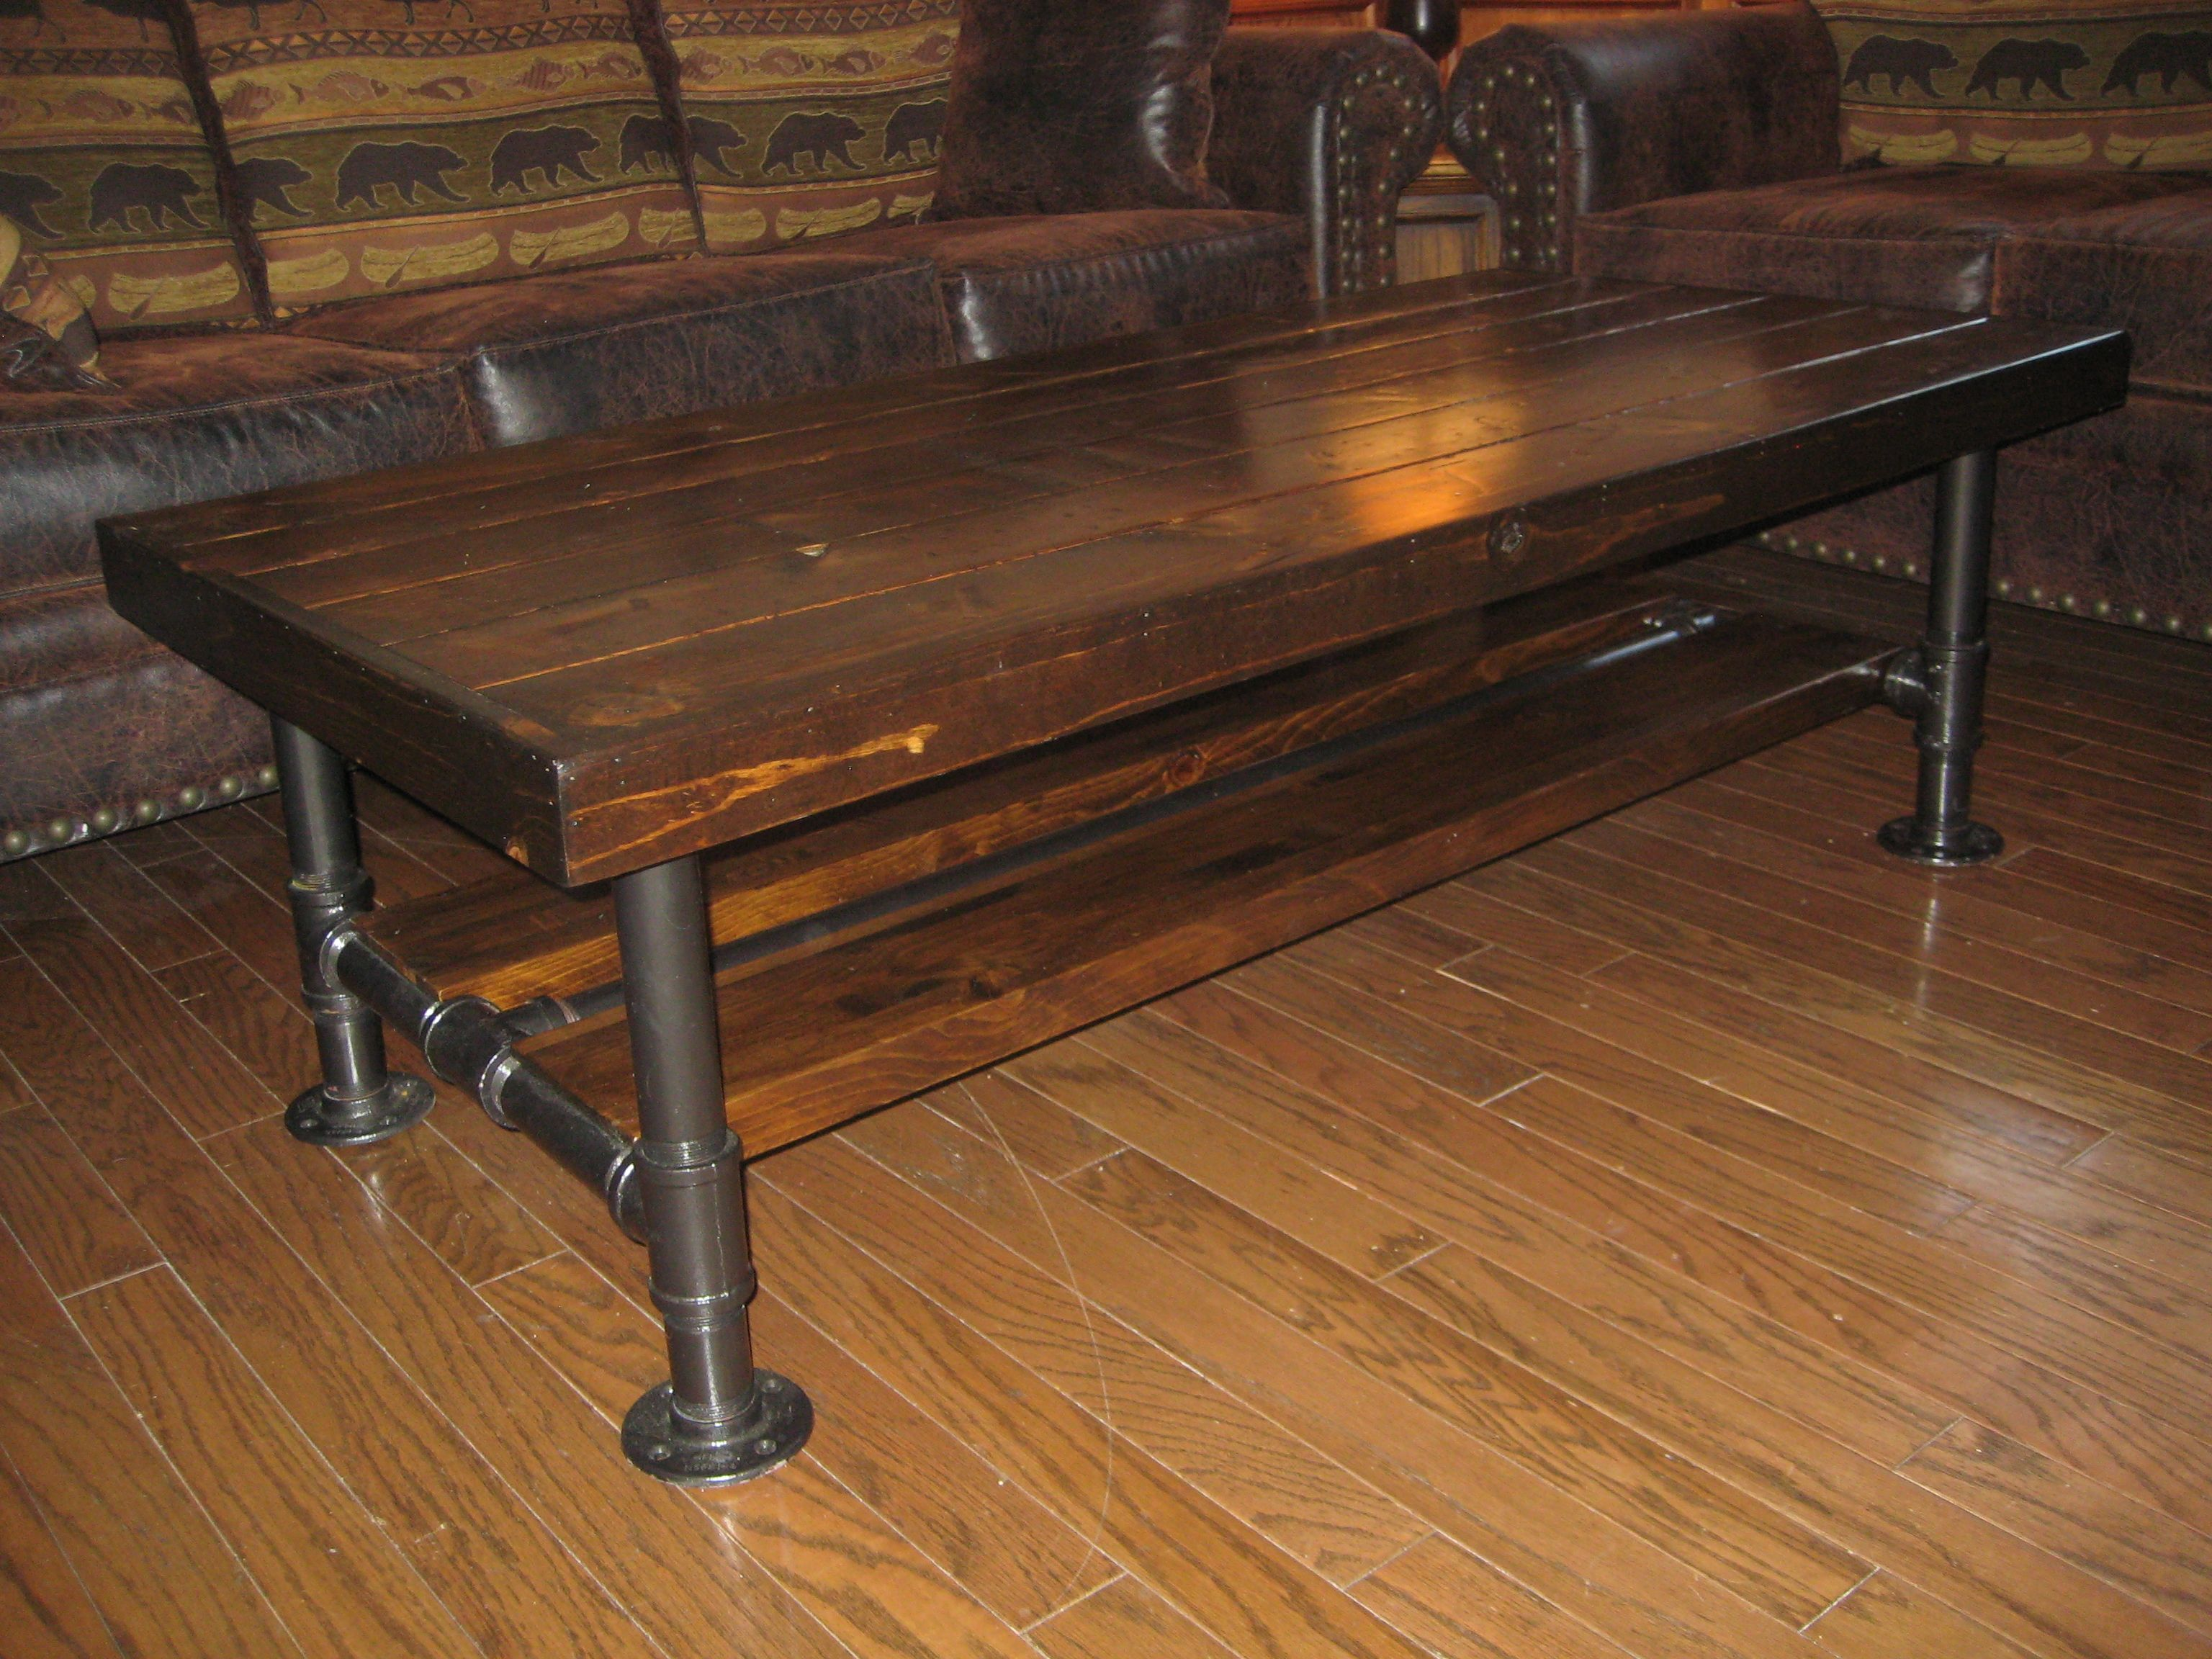 Distressed Rustic Knotty Pine Coffee Table With Steel Pipe Legs With Lower Wood Shelf If You